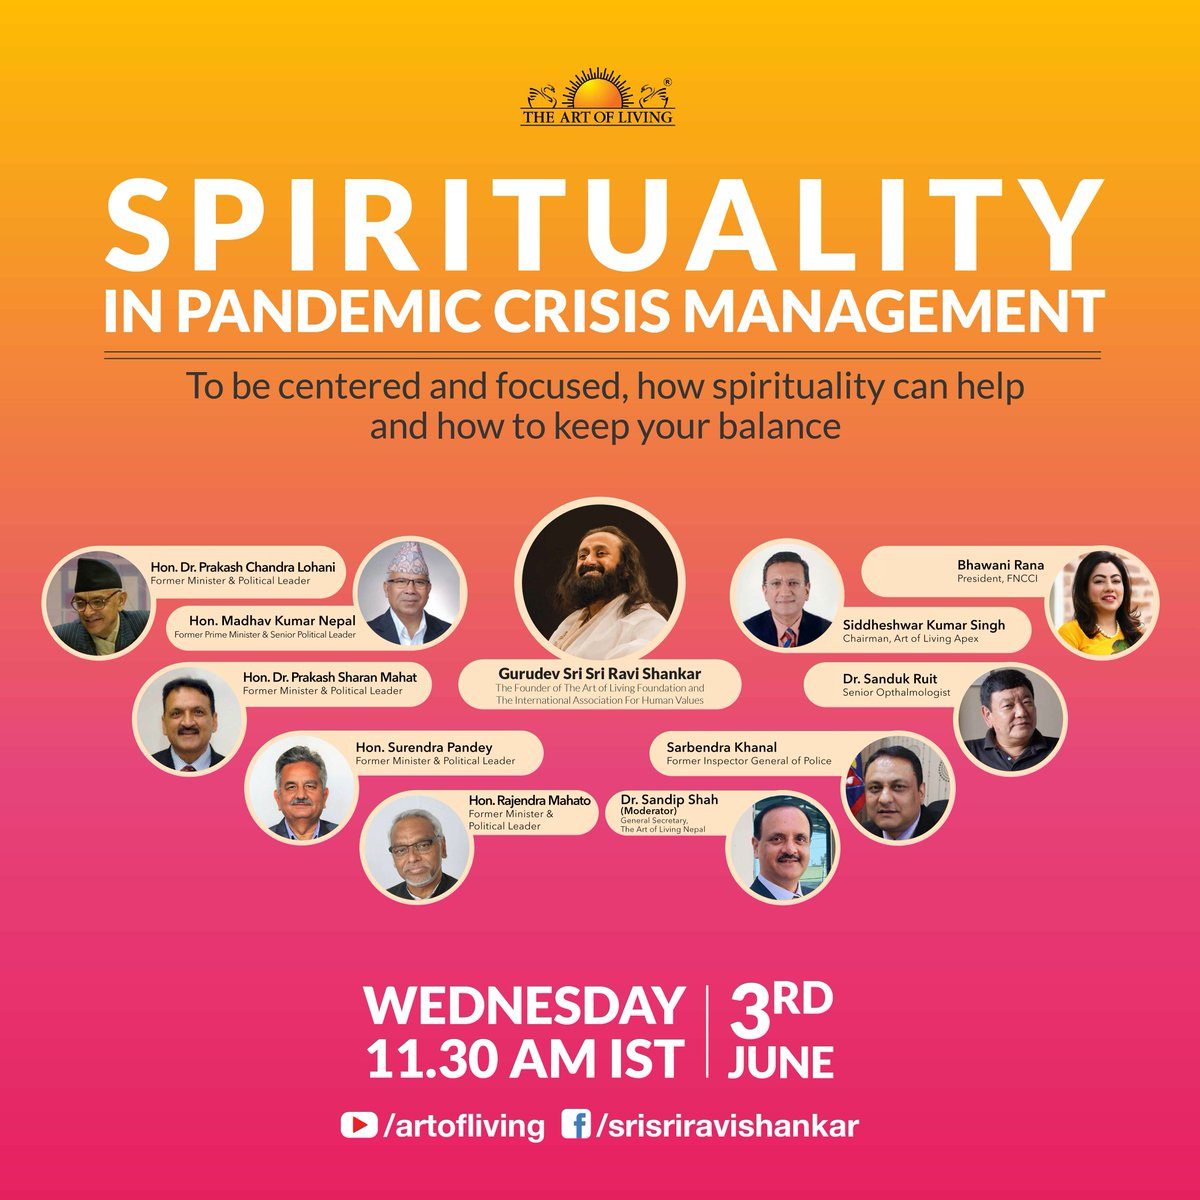 Join us on 3rd June, 11:45 AM Nepal Time onwards for a diverse and exceptional panelists for a dialogue with Gurudev Sri Sri Ravi Shankar on Spirituality in pandemic crisis management  Watch on @SriSri's Facebook, Twitter, Instagram & YouTube  https://t.co/PiAiikG4hQ https://t.co/ZIQTScVNF5